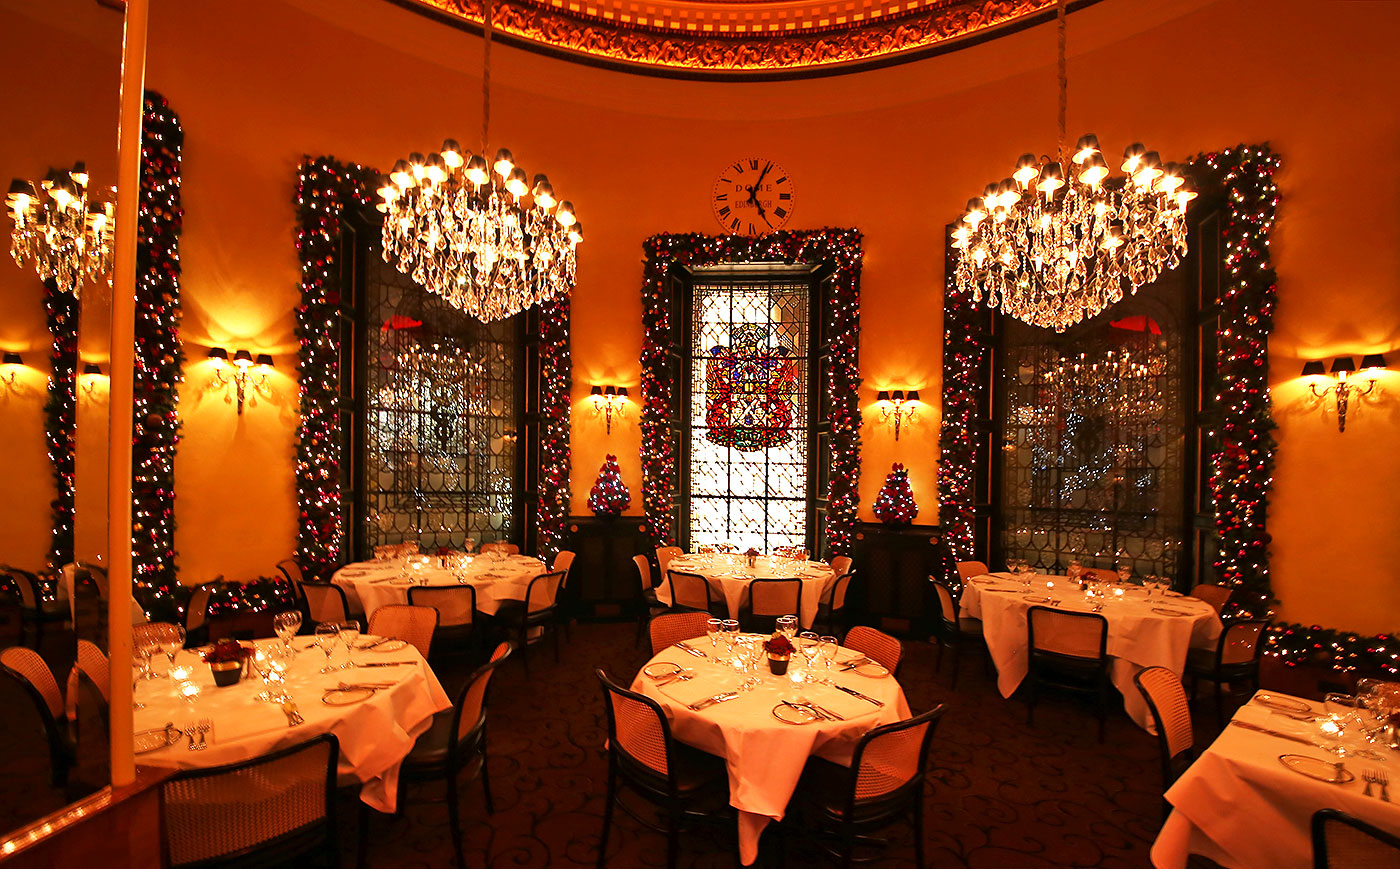 The dome restaurant 14 george street 14 george street exterior decorated for christmas 2013 - Restaurant decor supplies ...